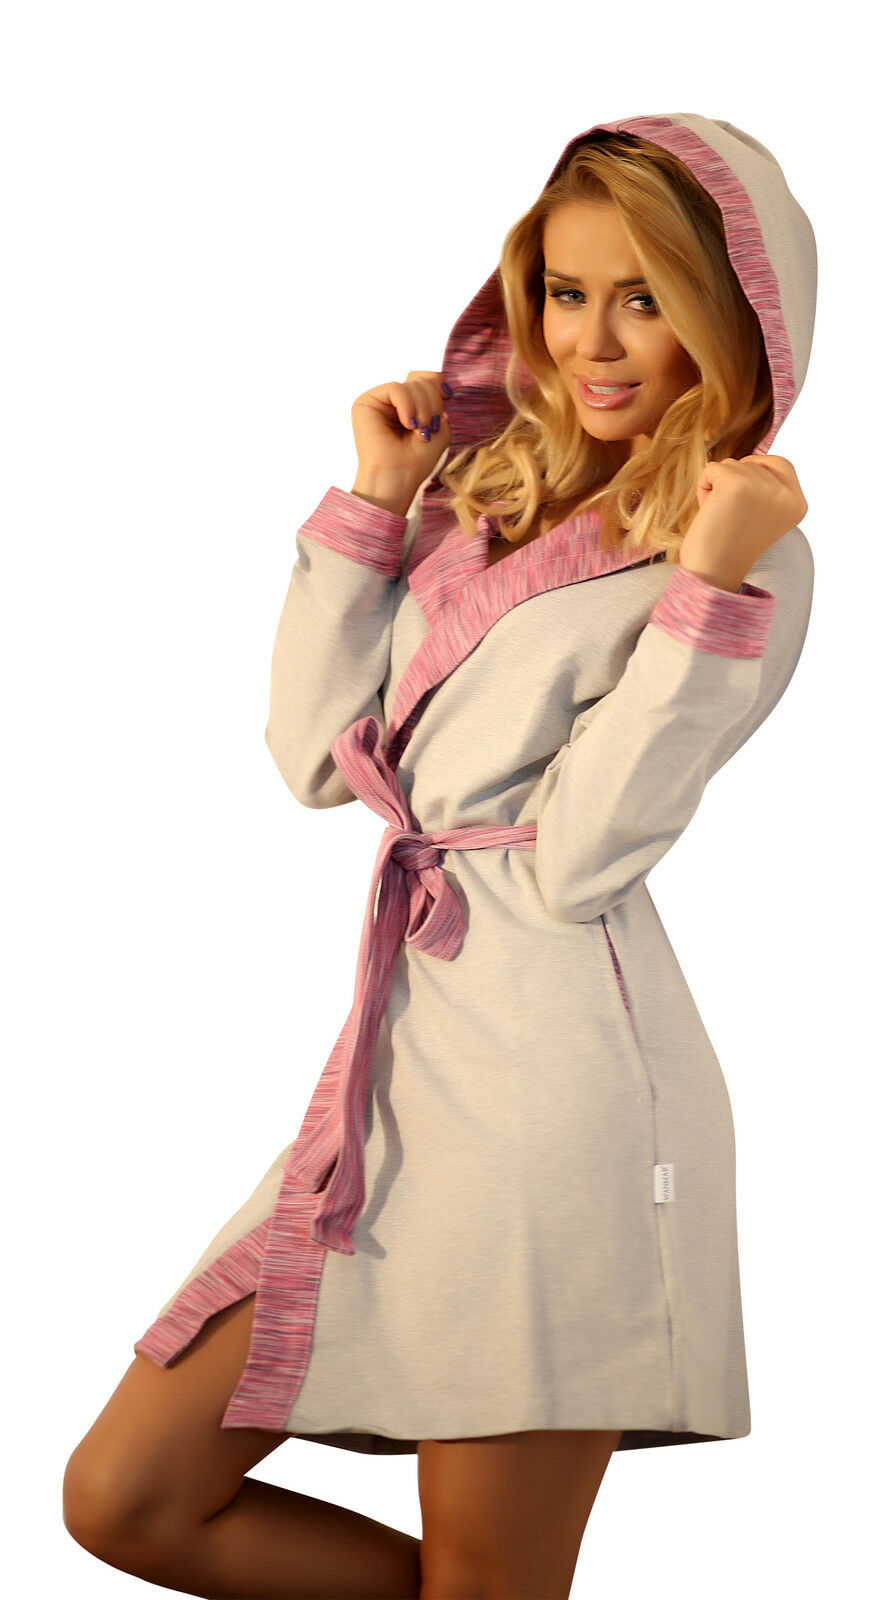 Details about Womens Warm Hooded Housecoat Short Dressing Gown Cotton Soft Bathrobe Robe